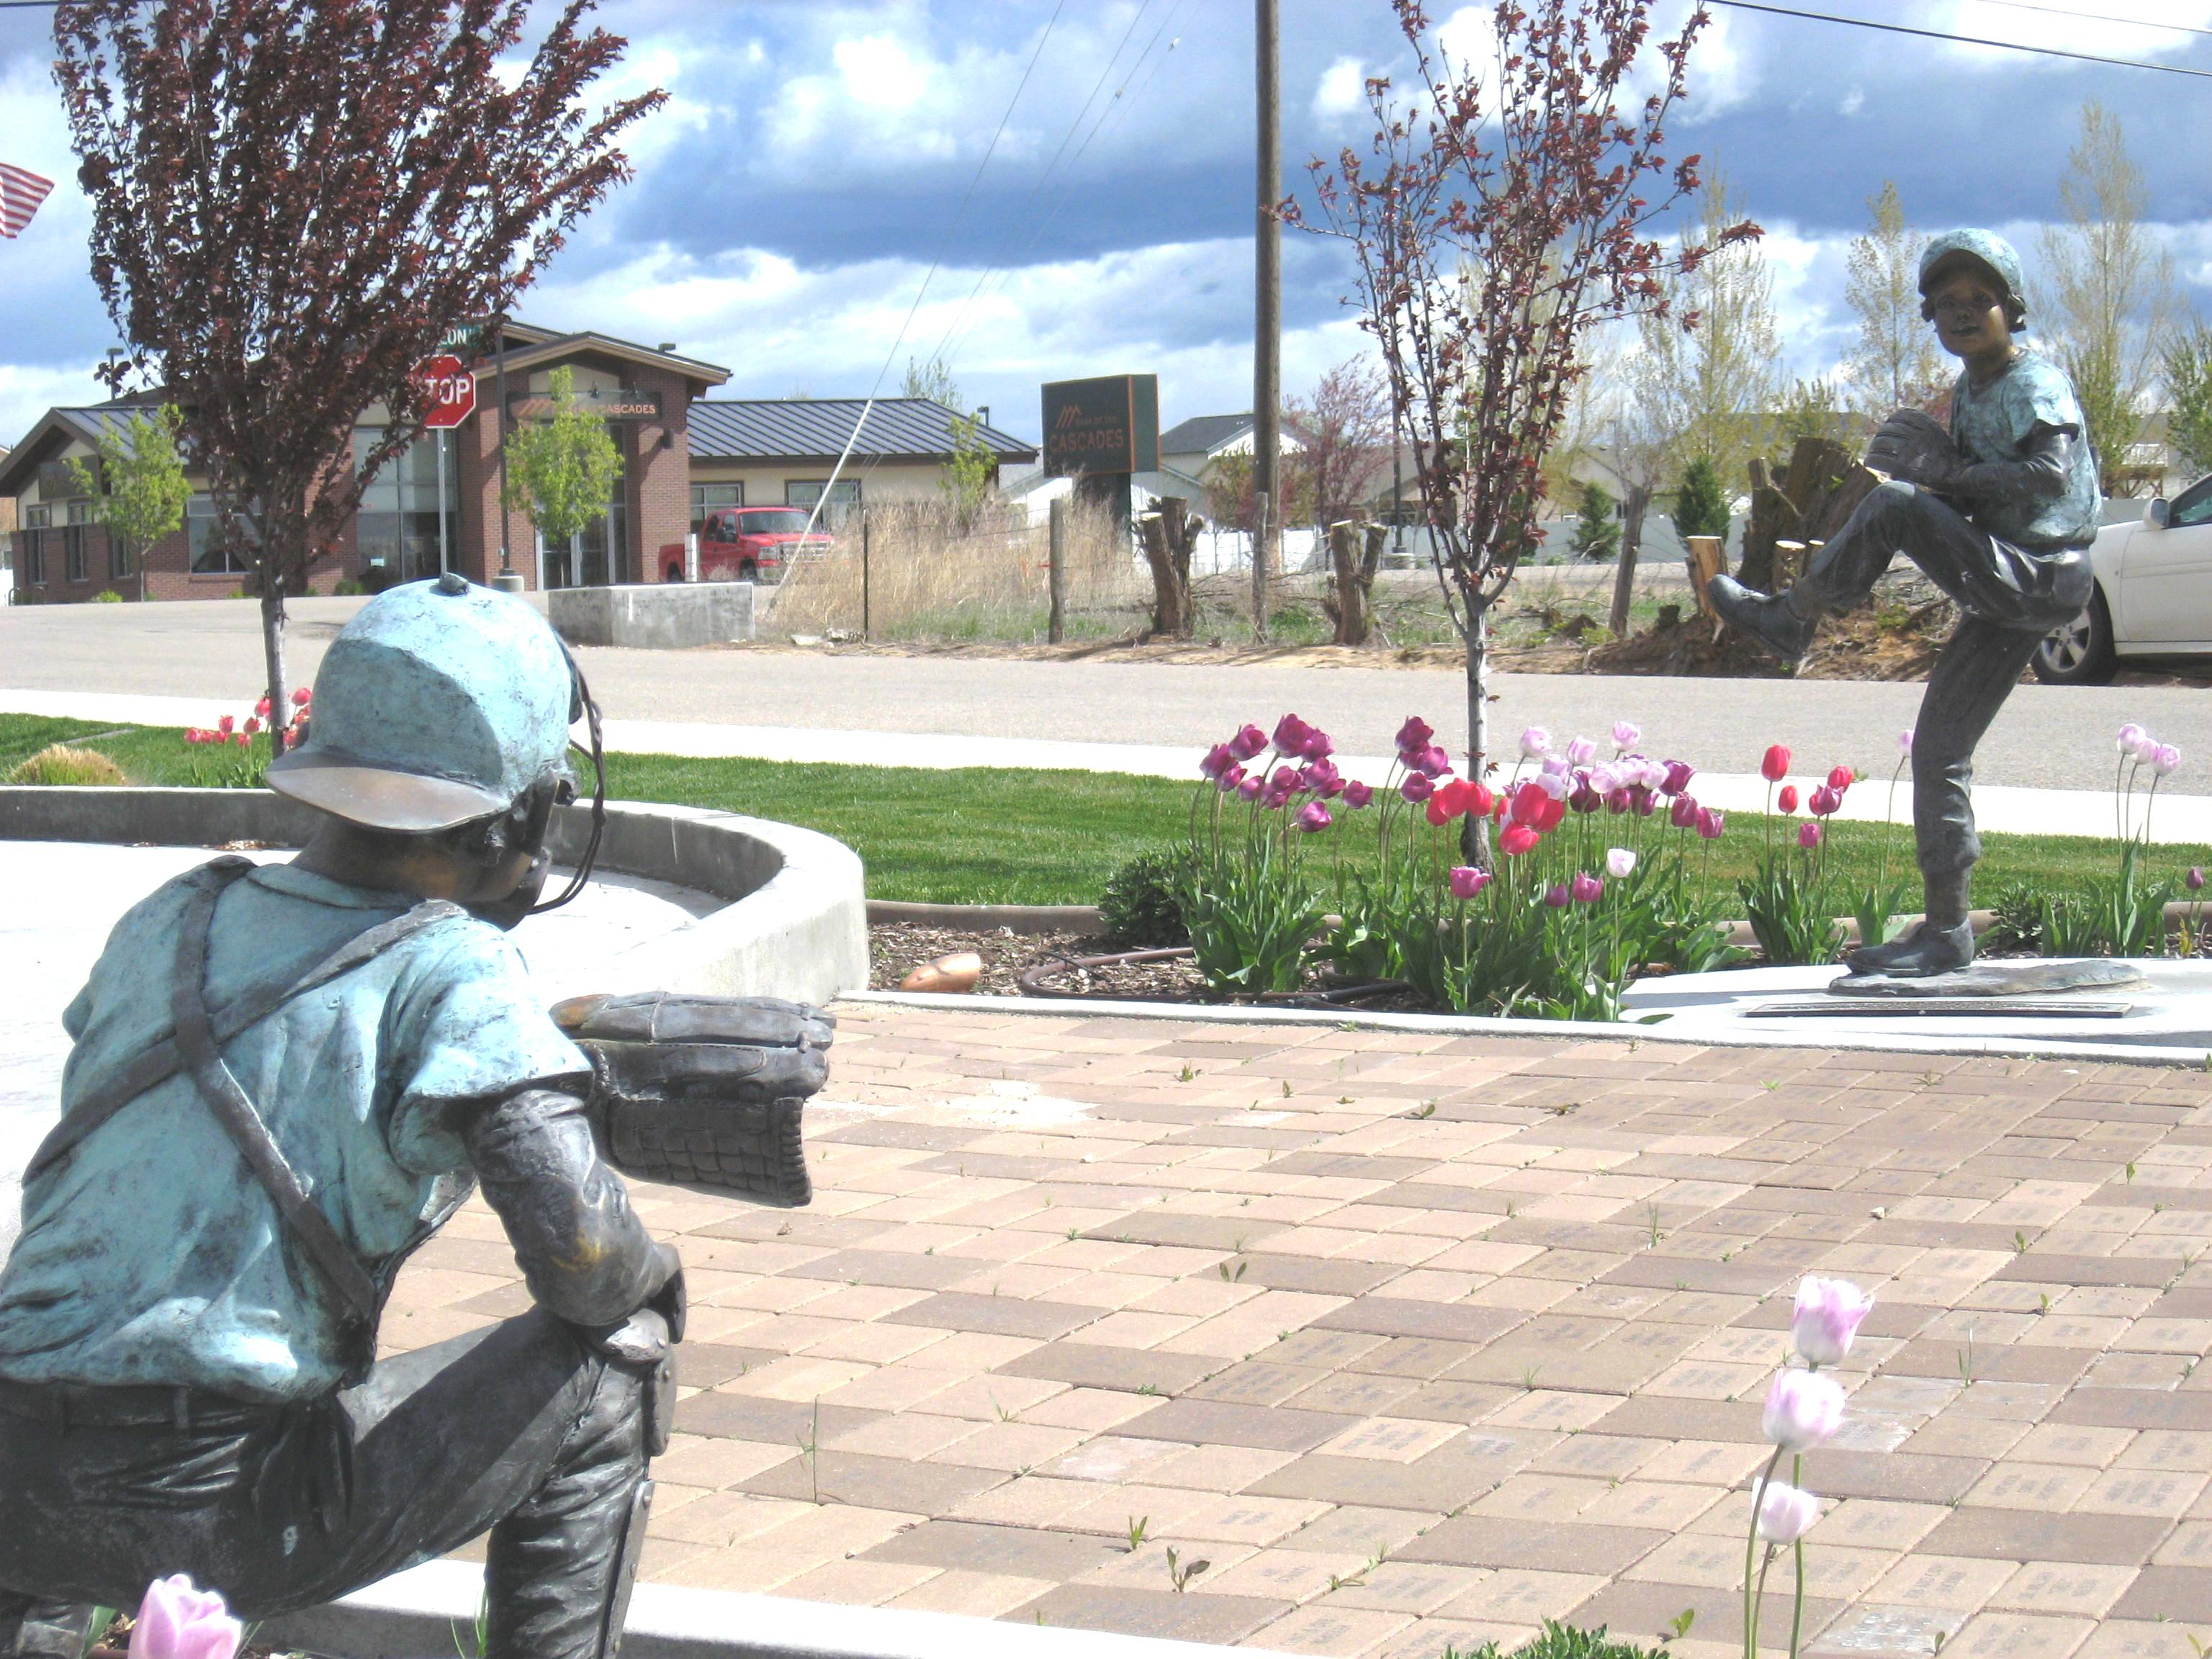 Statue of child pitching baseball to a catcher